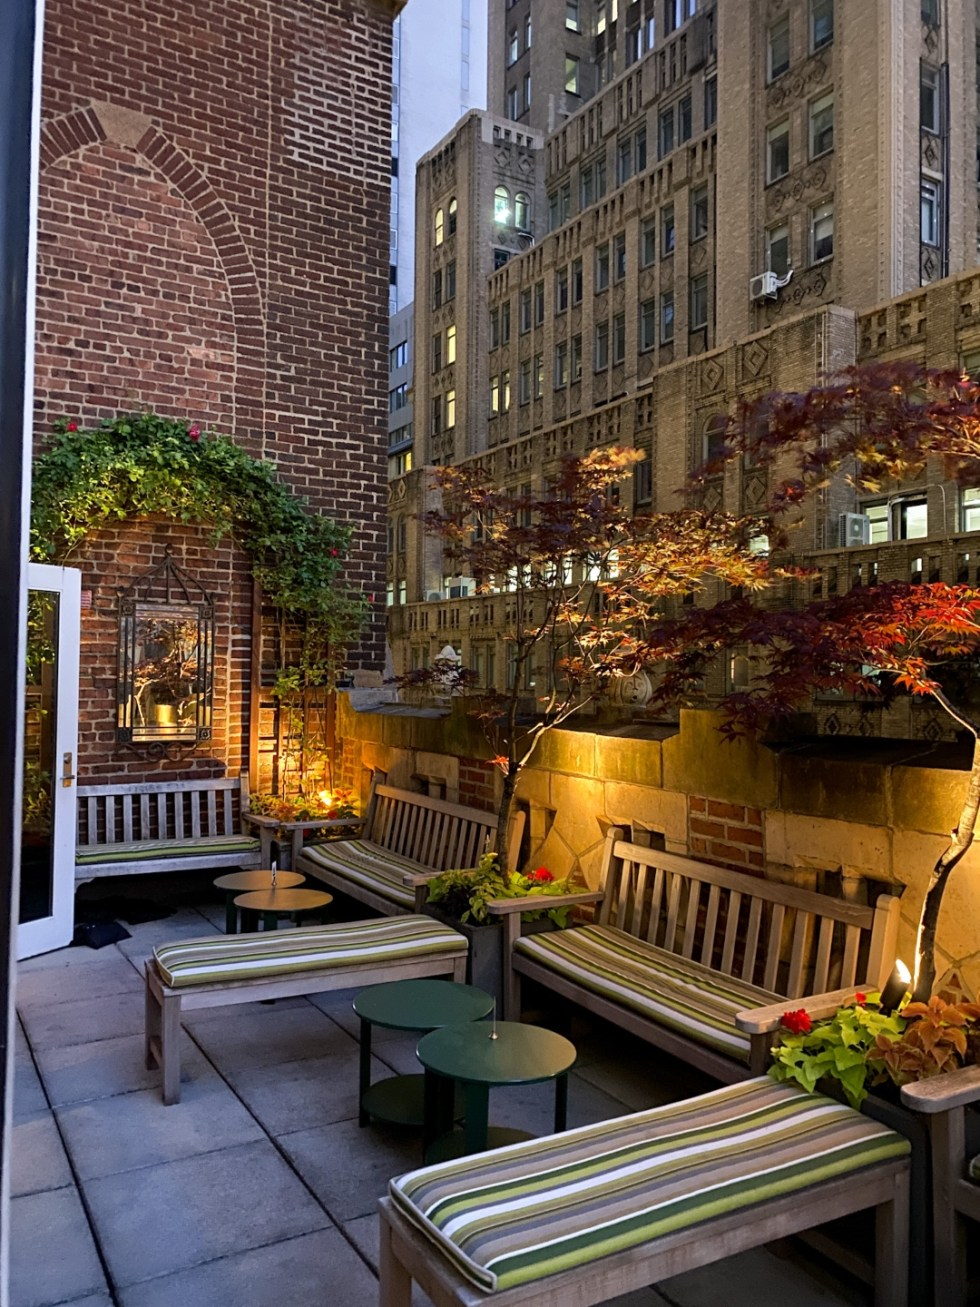 NYC Summer Weekend: Things to Do in NYC in the Summer - I'm Fixin' To - @imfixintoblog   NYC Summer Weekend by popular NC travel blog, I'm Fixin' To: image of a patio with wooden benches and black round coffee tables.